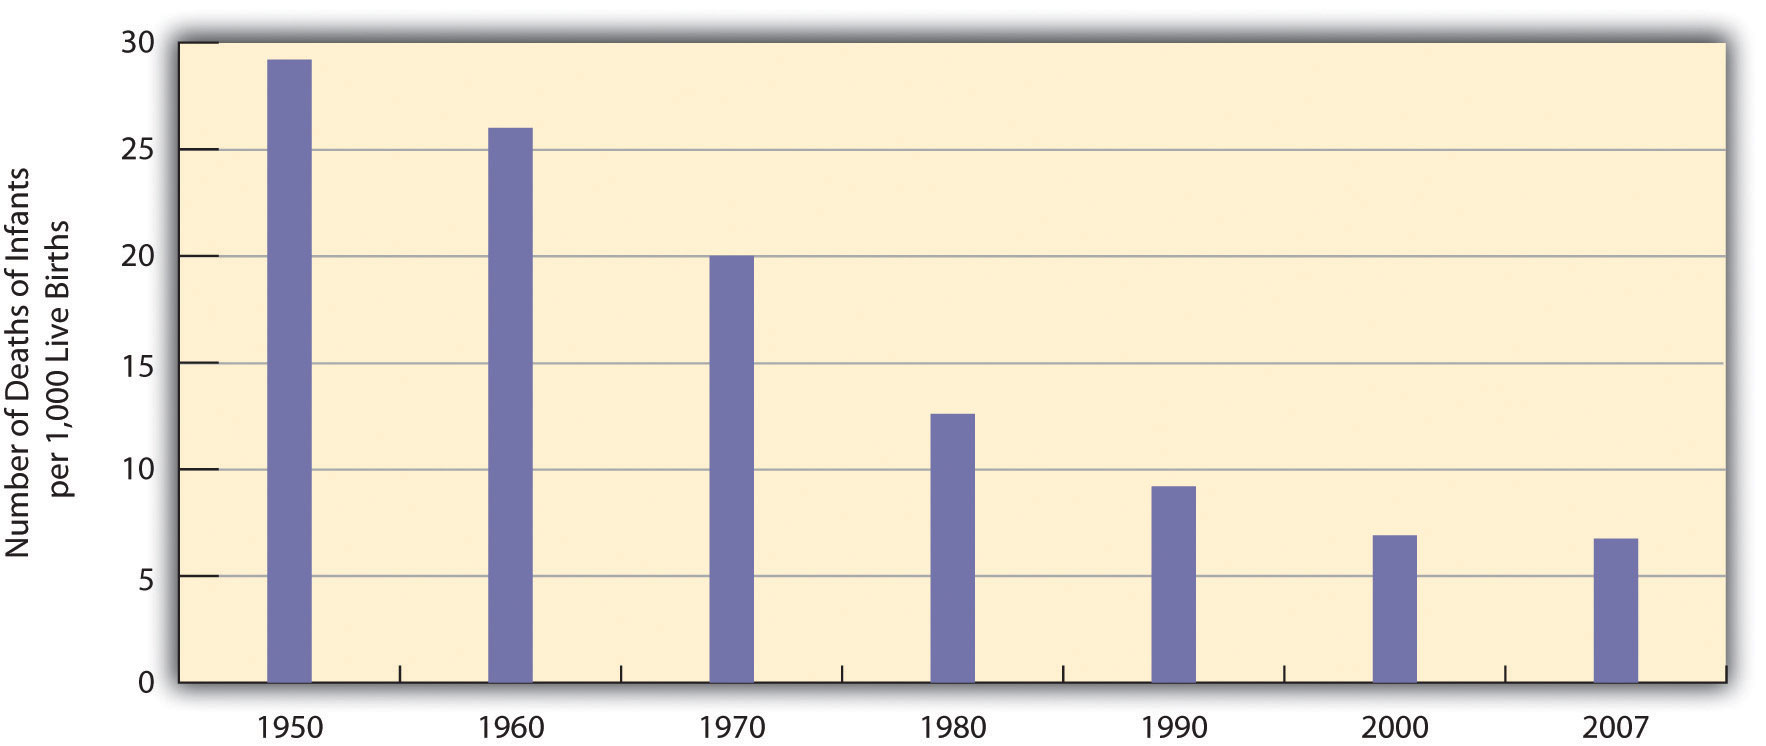 Infant Deaths per 1,000 Live Births. In 1950, it was as high as 28 in 1,000 births resulted in death, in 2007, it has dropped to around 7 in 1,000